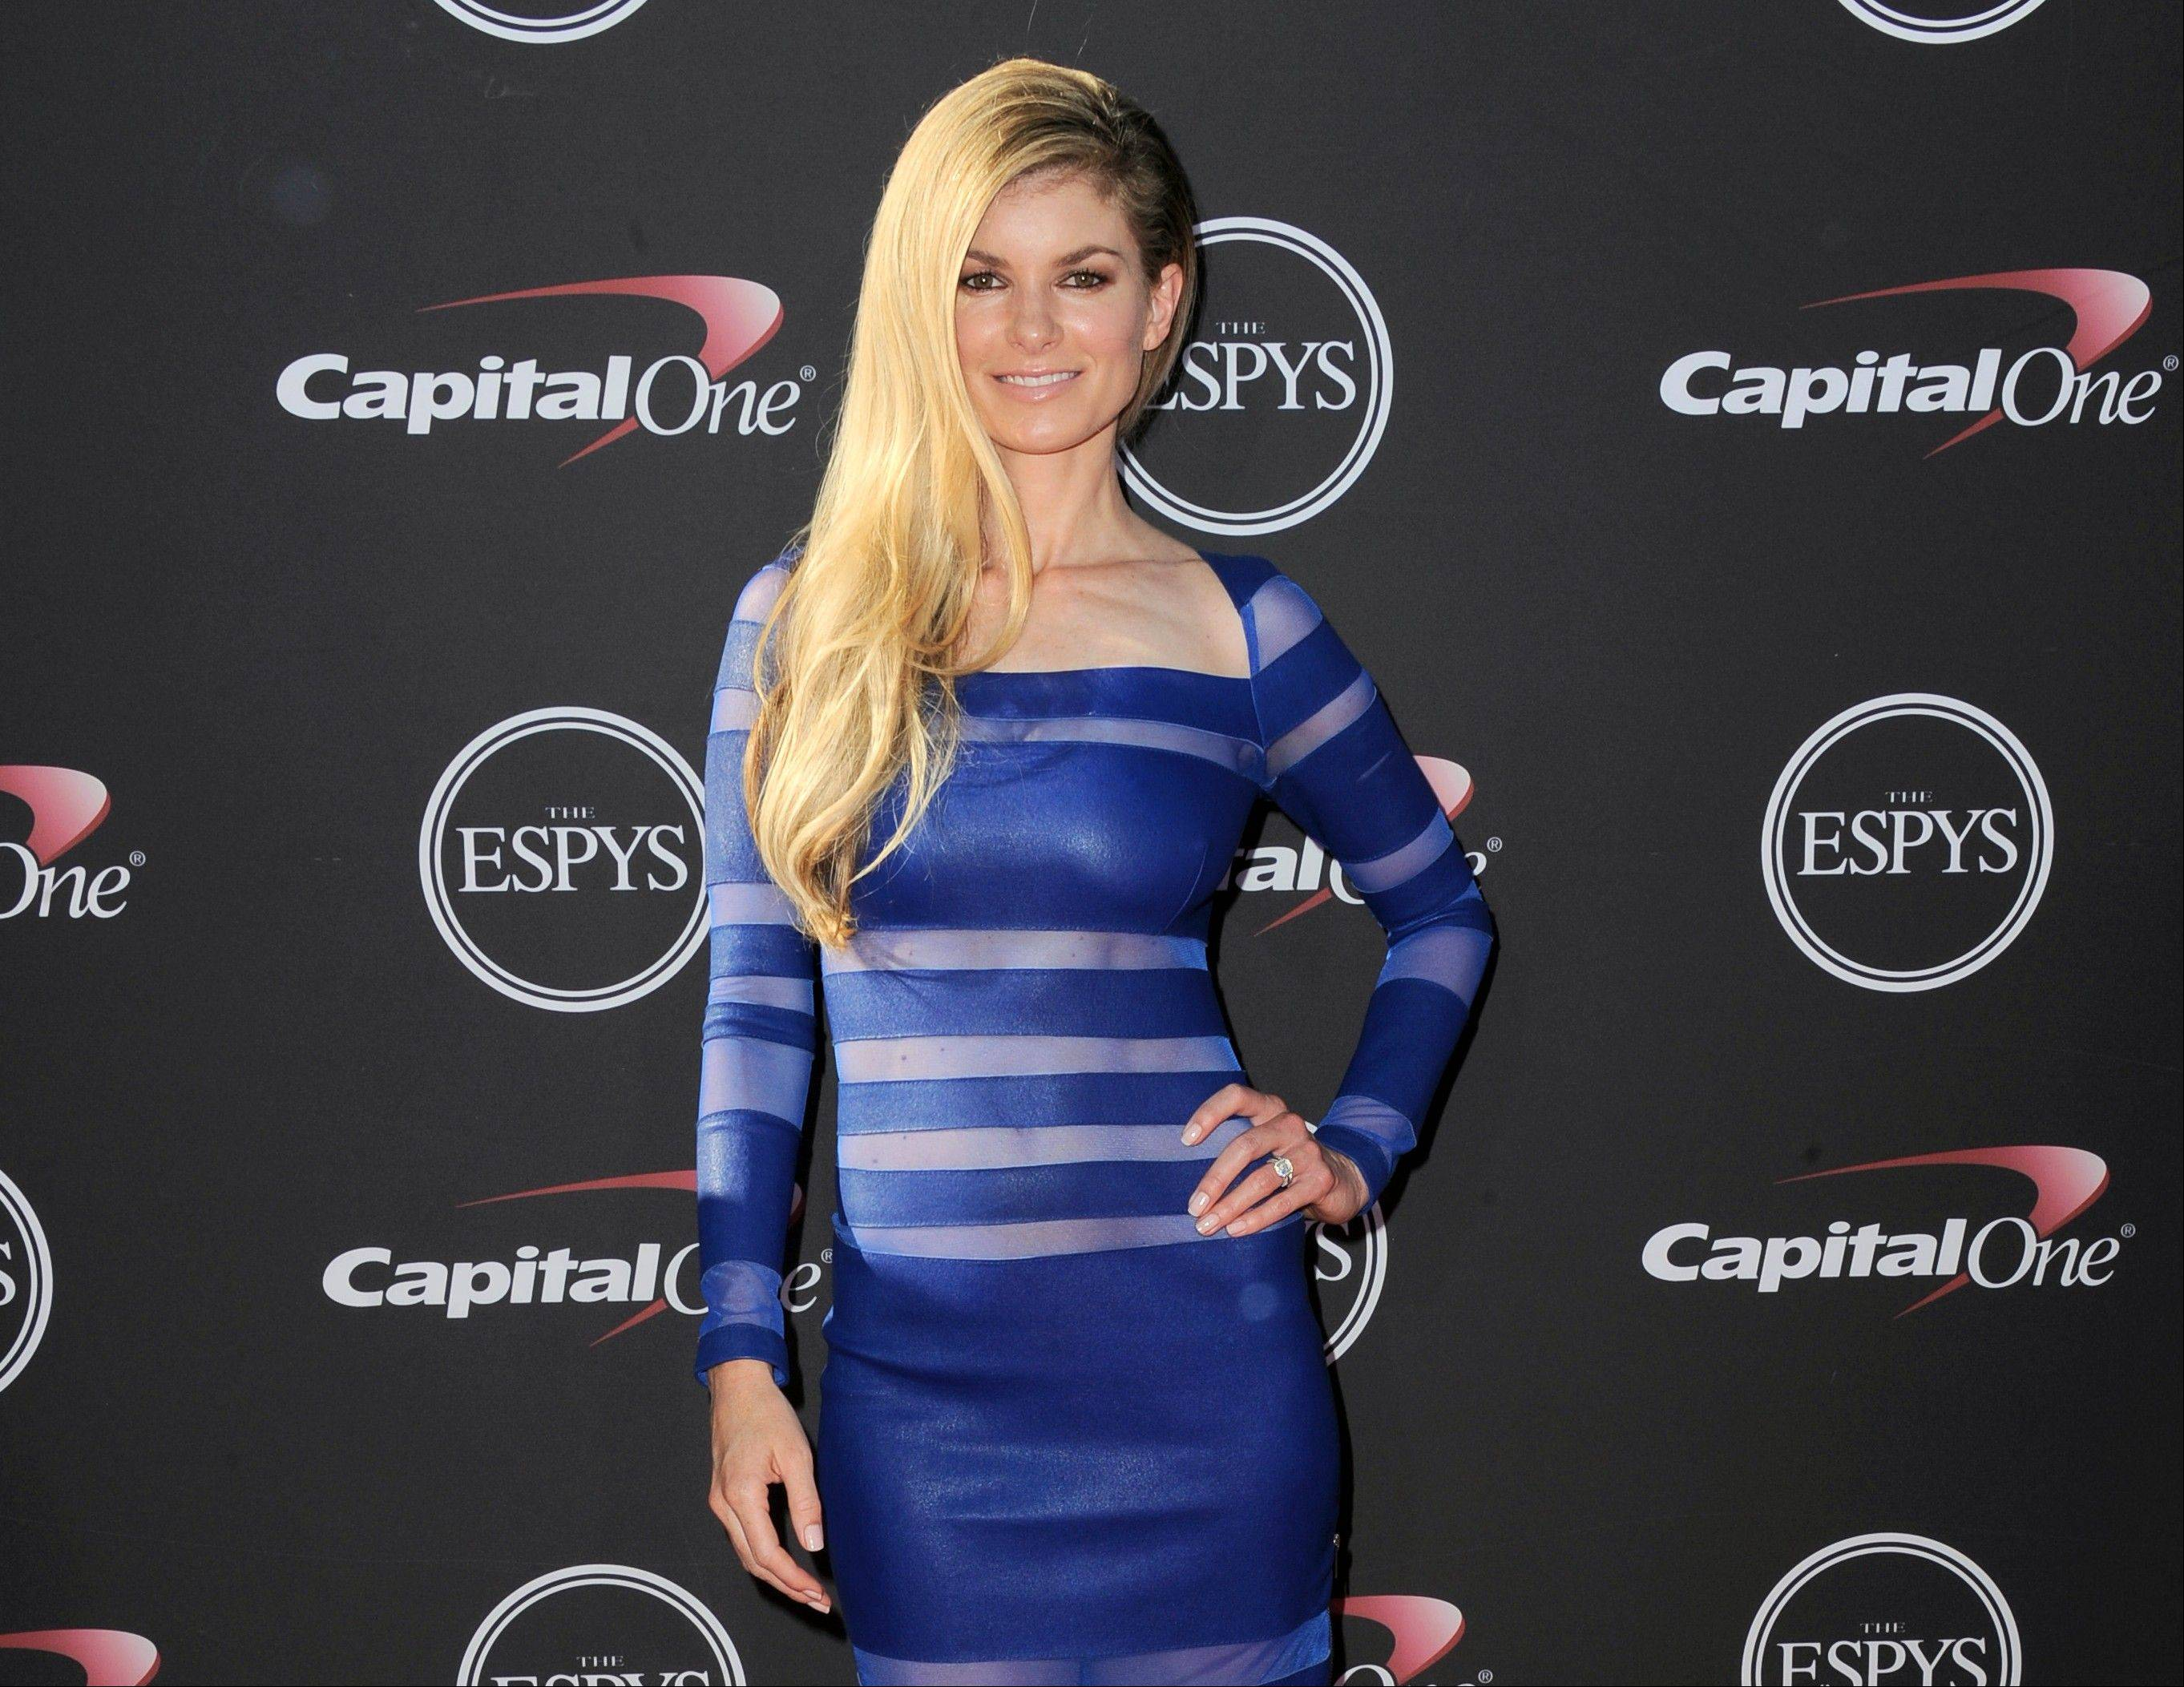 Model-actress Marisa Miller at the ESPY Awards at the Nokia Theatre in Los Angeles. Experts say the sheer look is trending, but it's not a trend for everyone, anytime and everywhere.